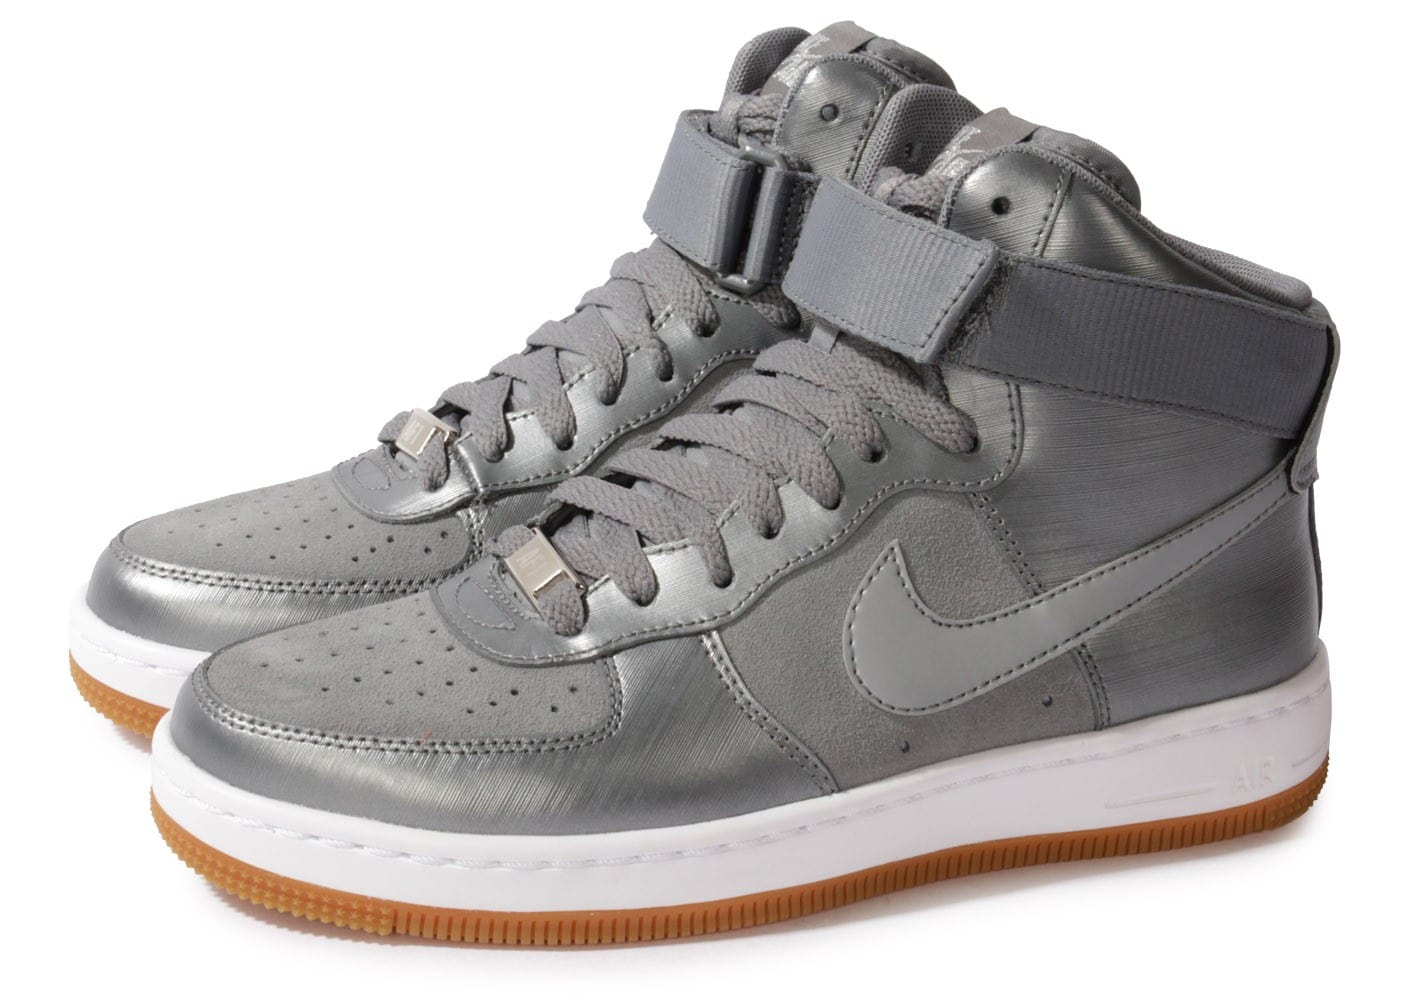 nike five forces Shop our wide selection of nike air force 1 shoes at footaction finding your look is easy with brands like adidas, nike sb, fila, champion, dope, and a whole lot more.